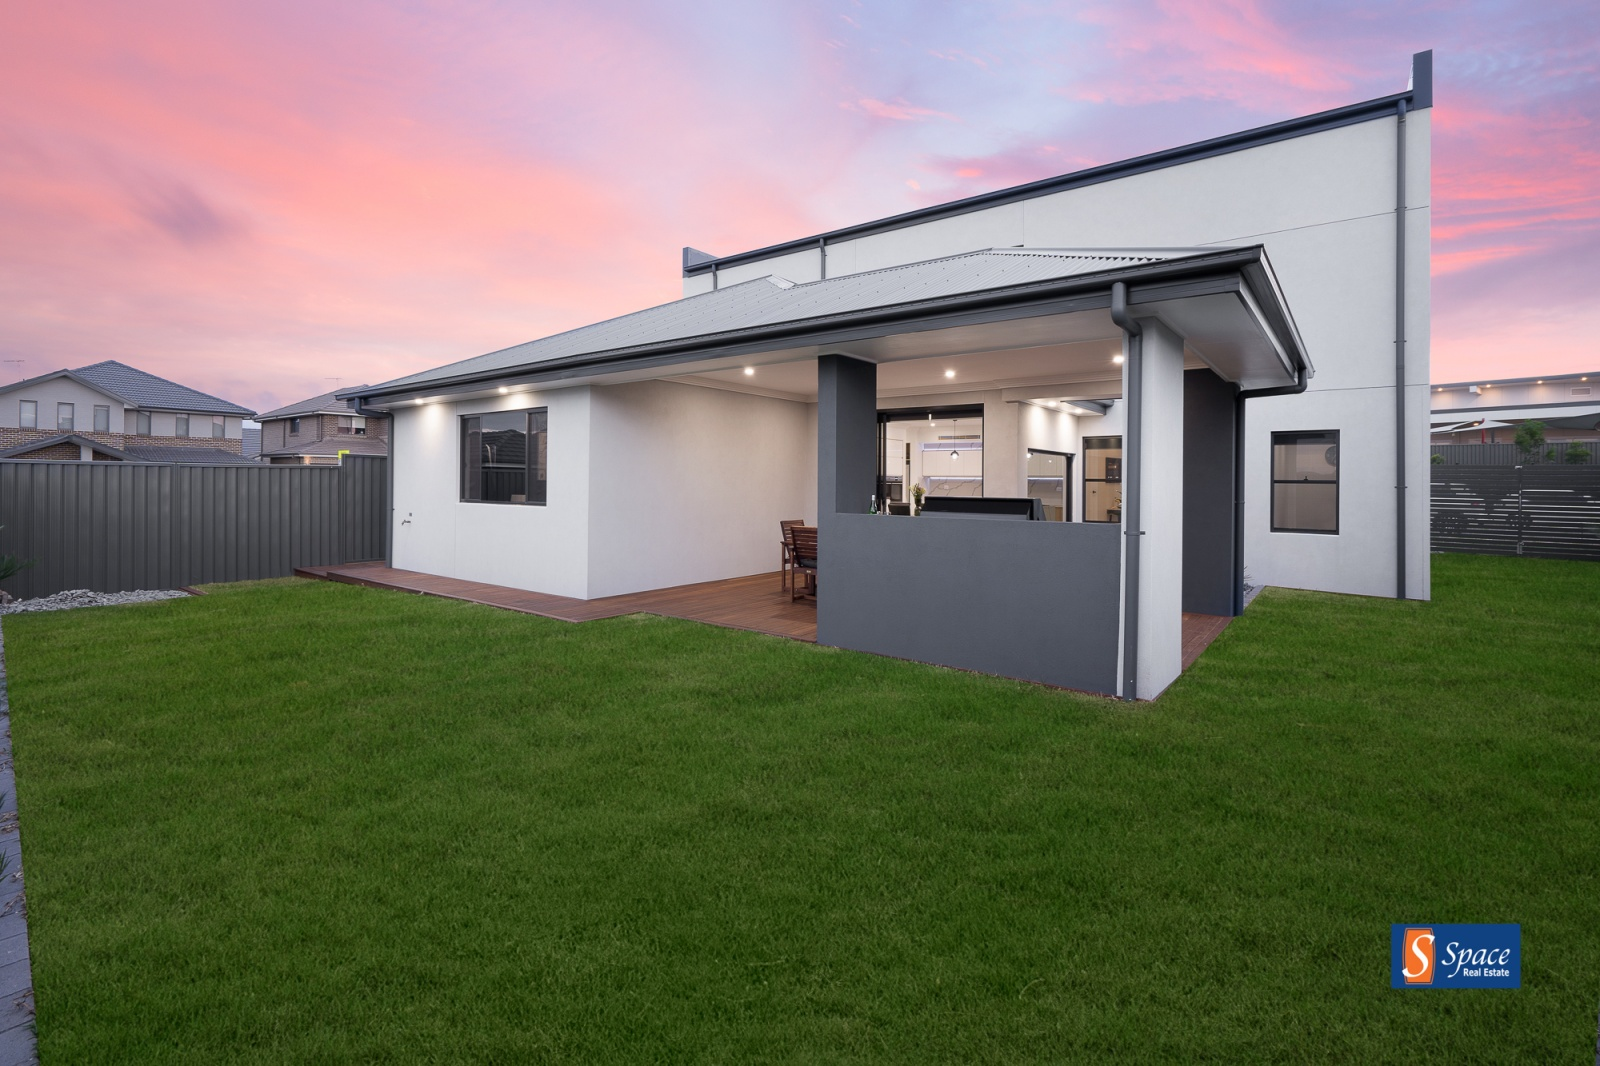 44 Hollows Drive,Oran Park,NSW,4 Bedrooms Bedrooms,3 BathroomsBathrooms,House,Hollows Drive,1316